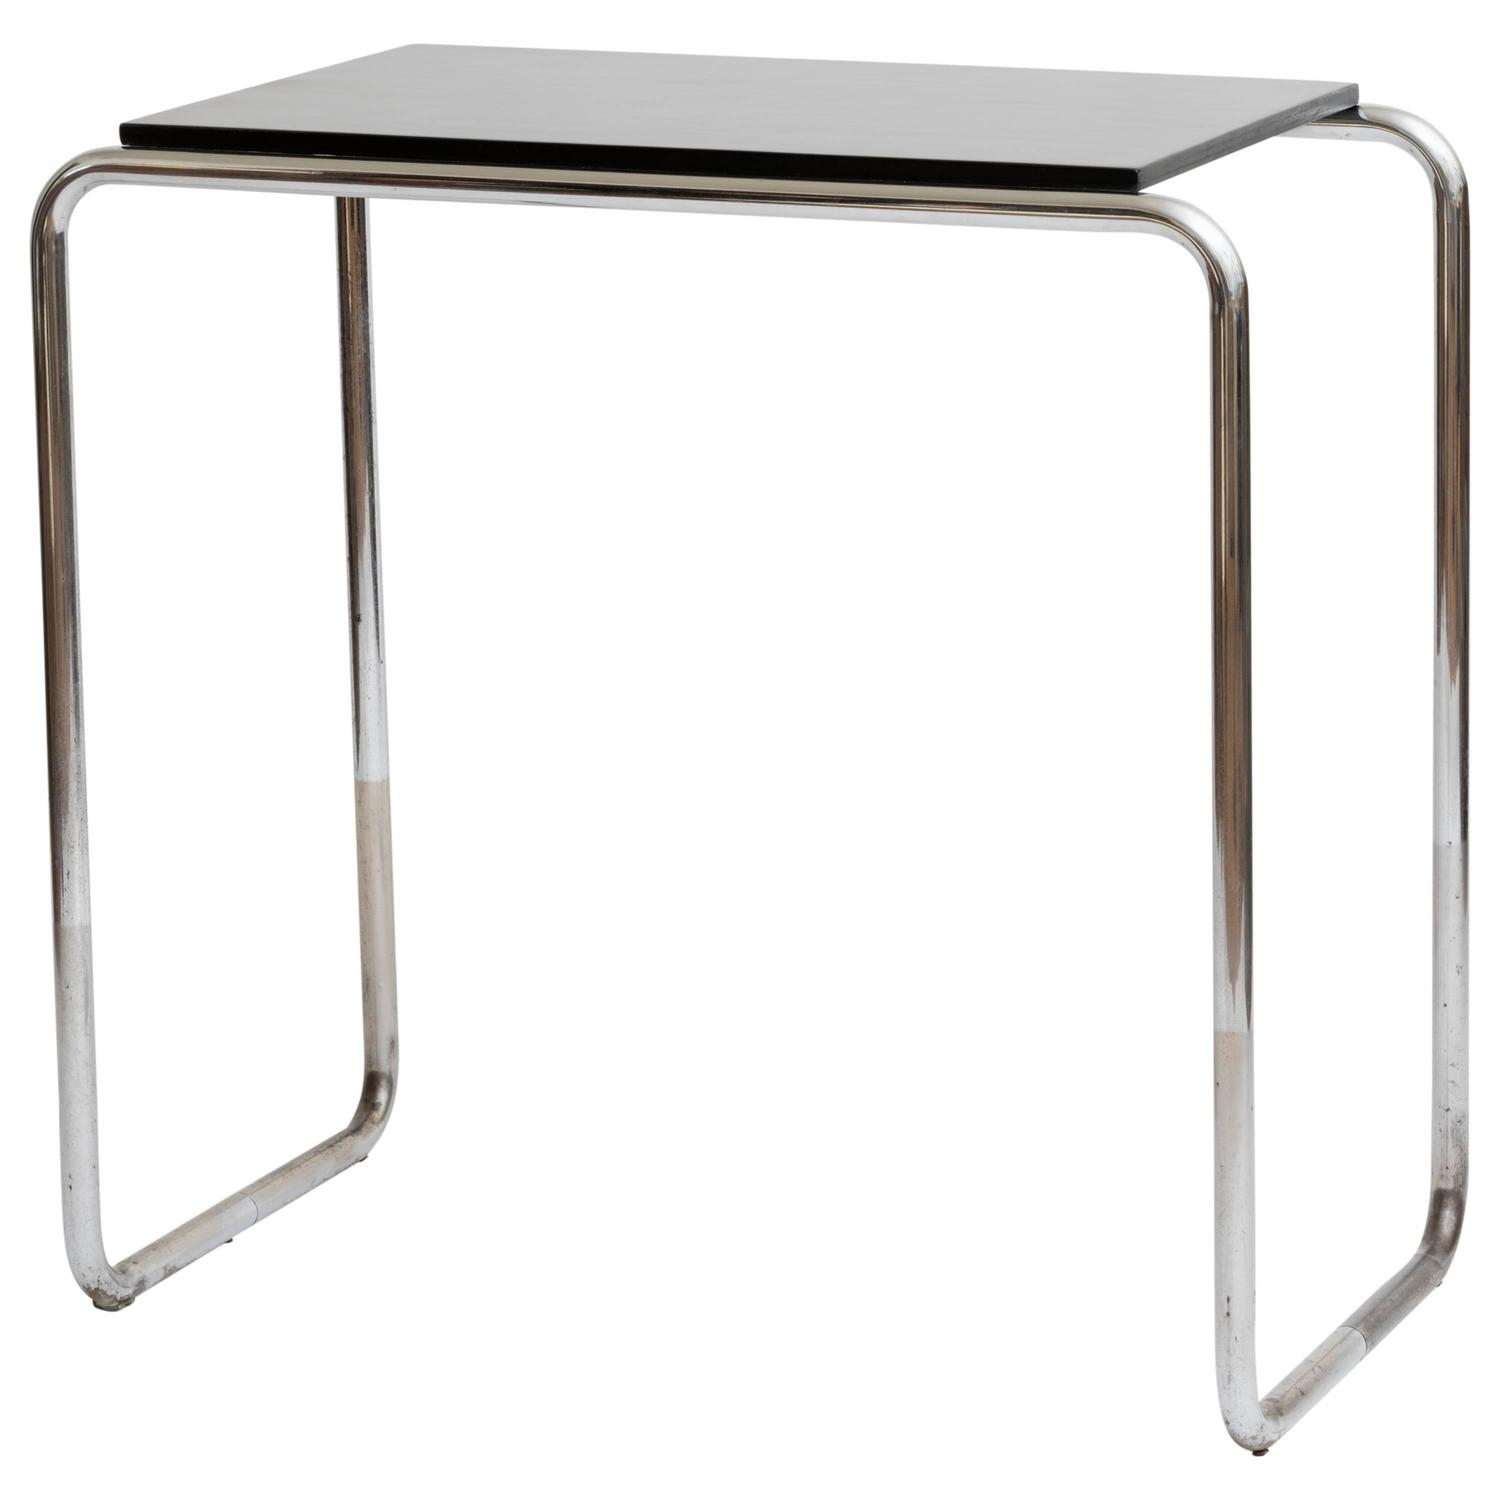 Marcel Breuer 1930s Lacquered Bar Console Table